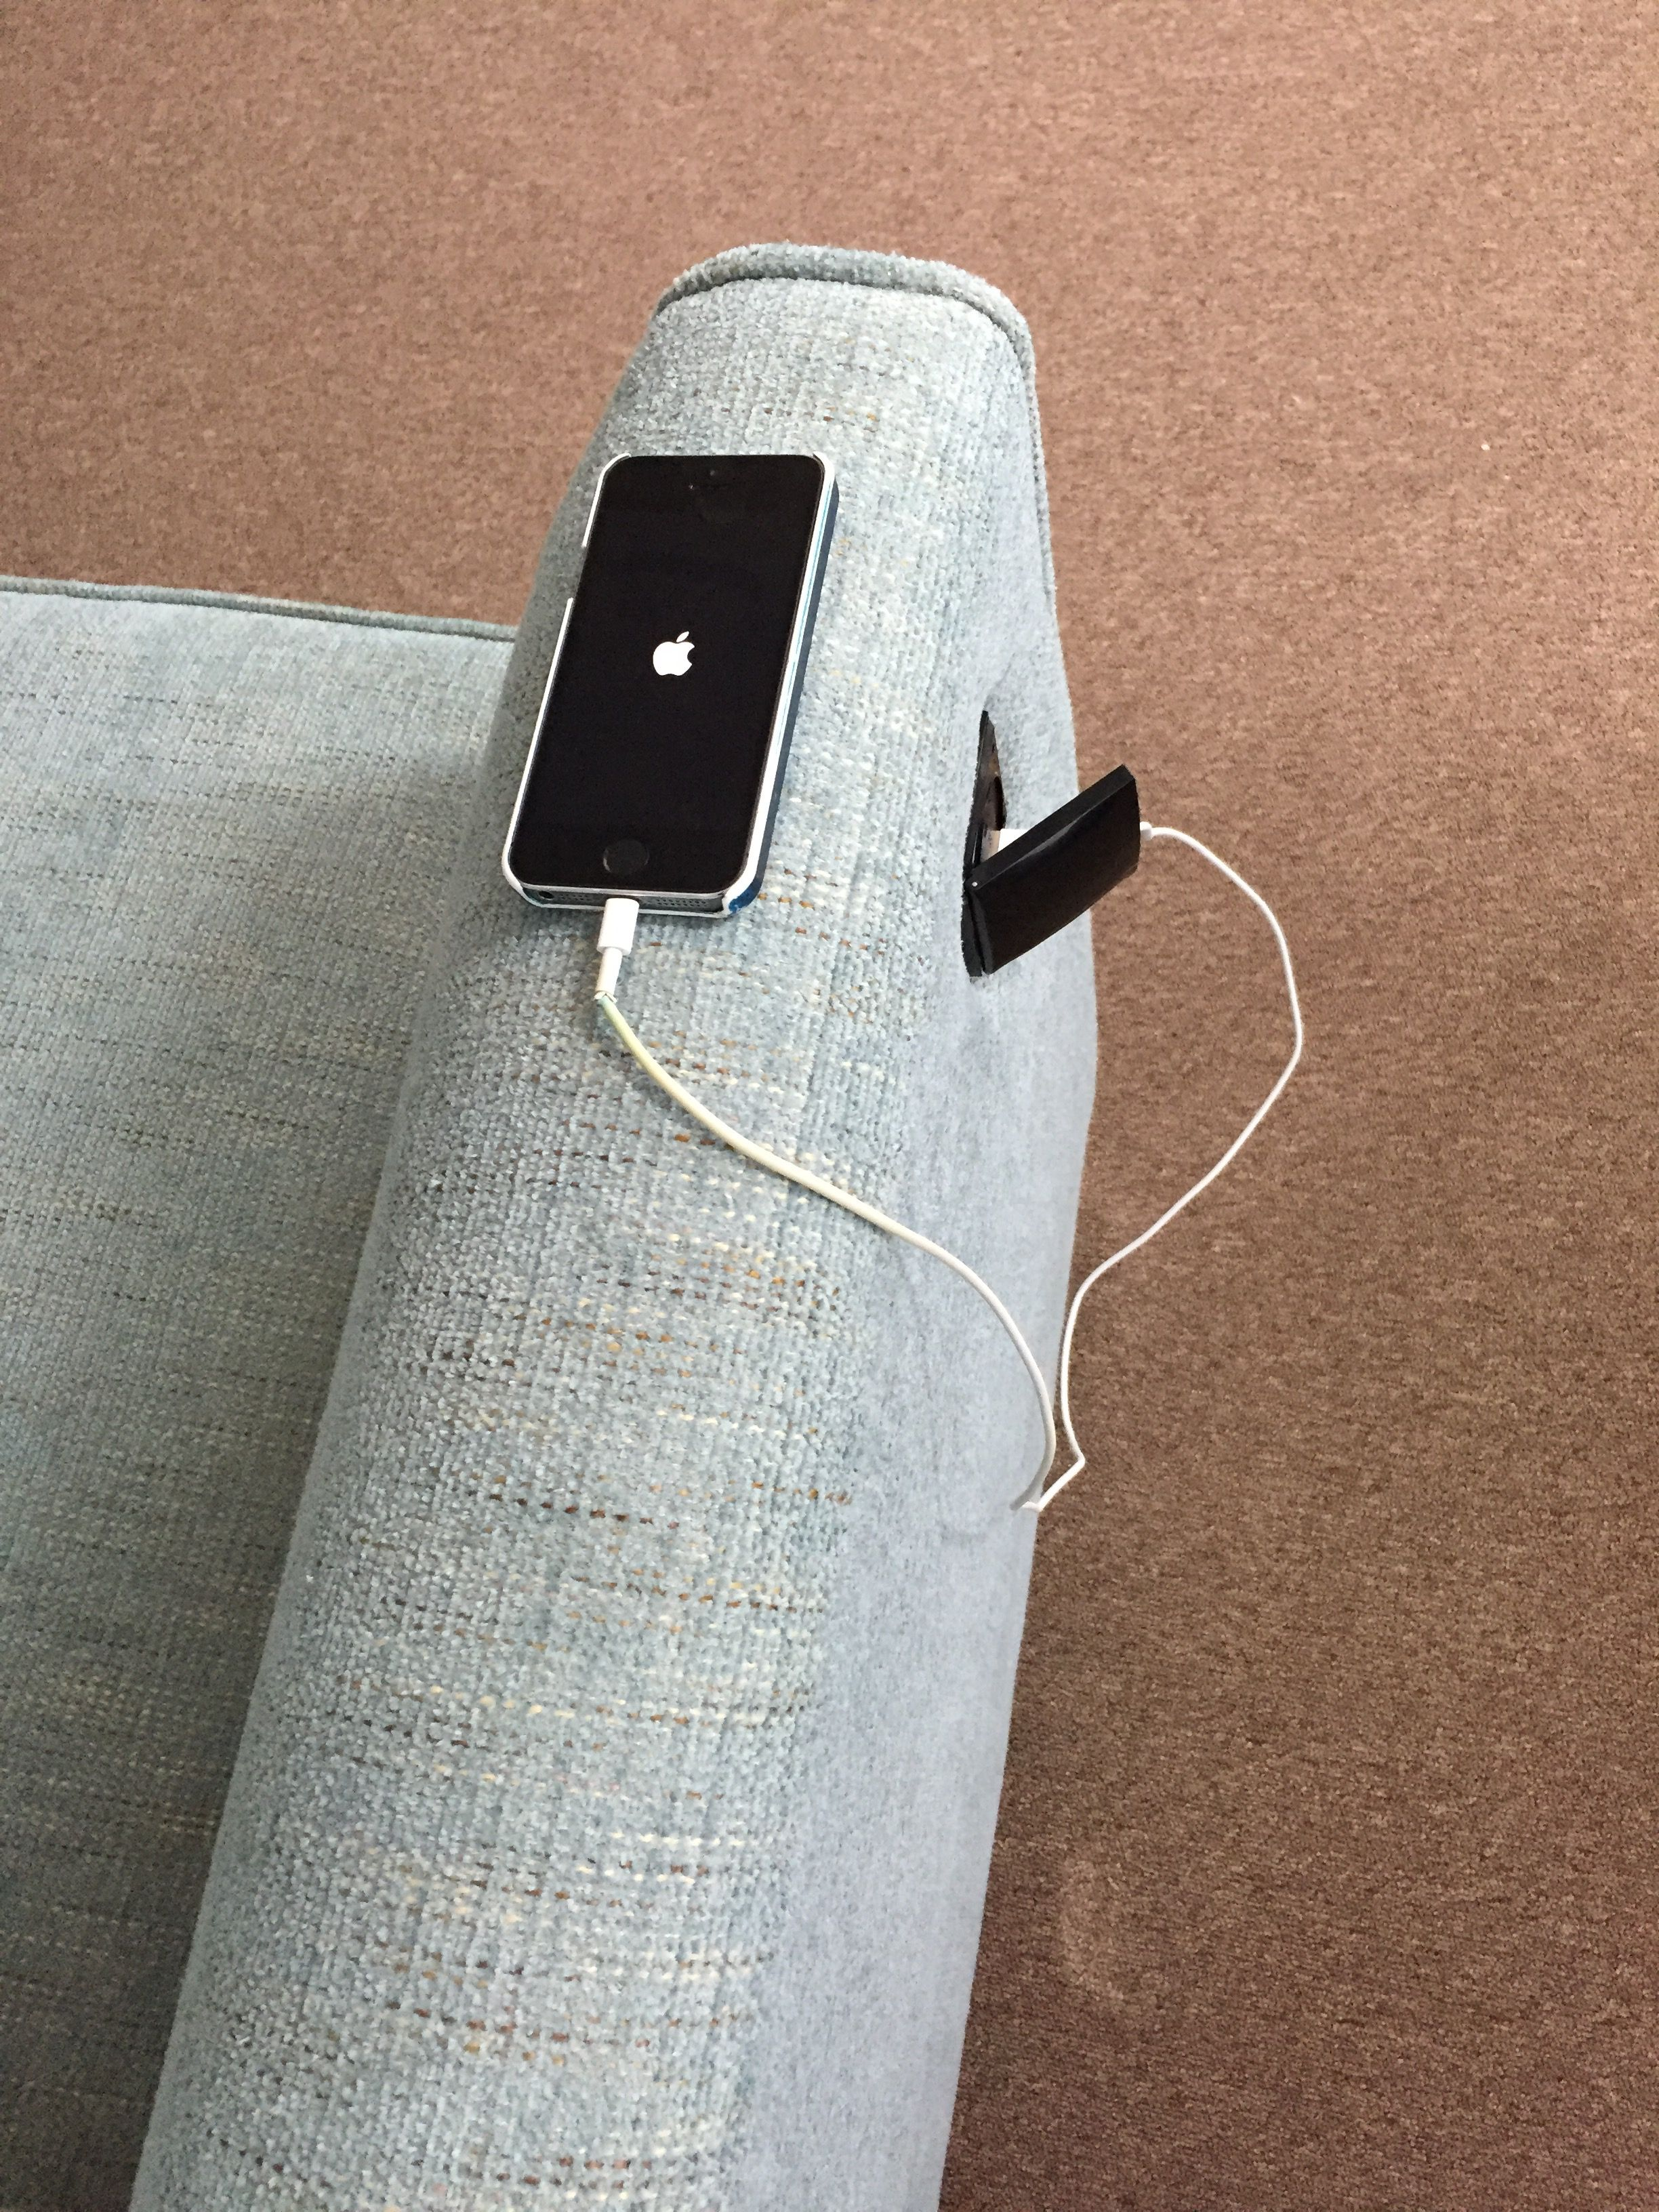 Sofa which incorporates a USB charger so you can charge your phone